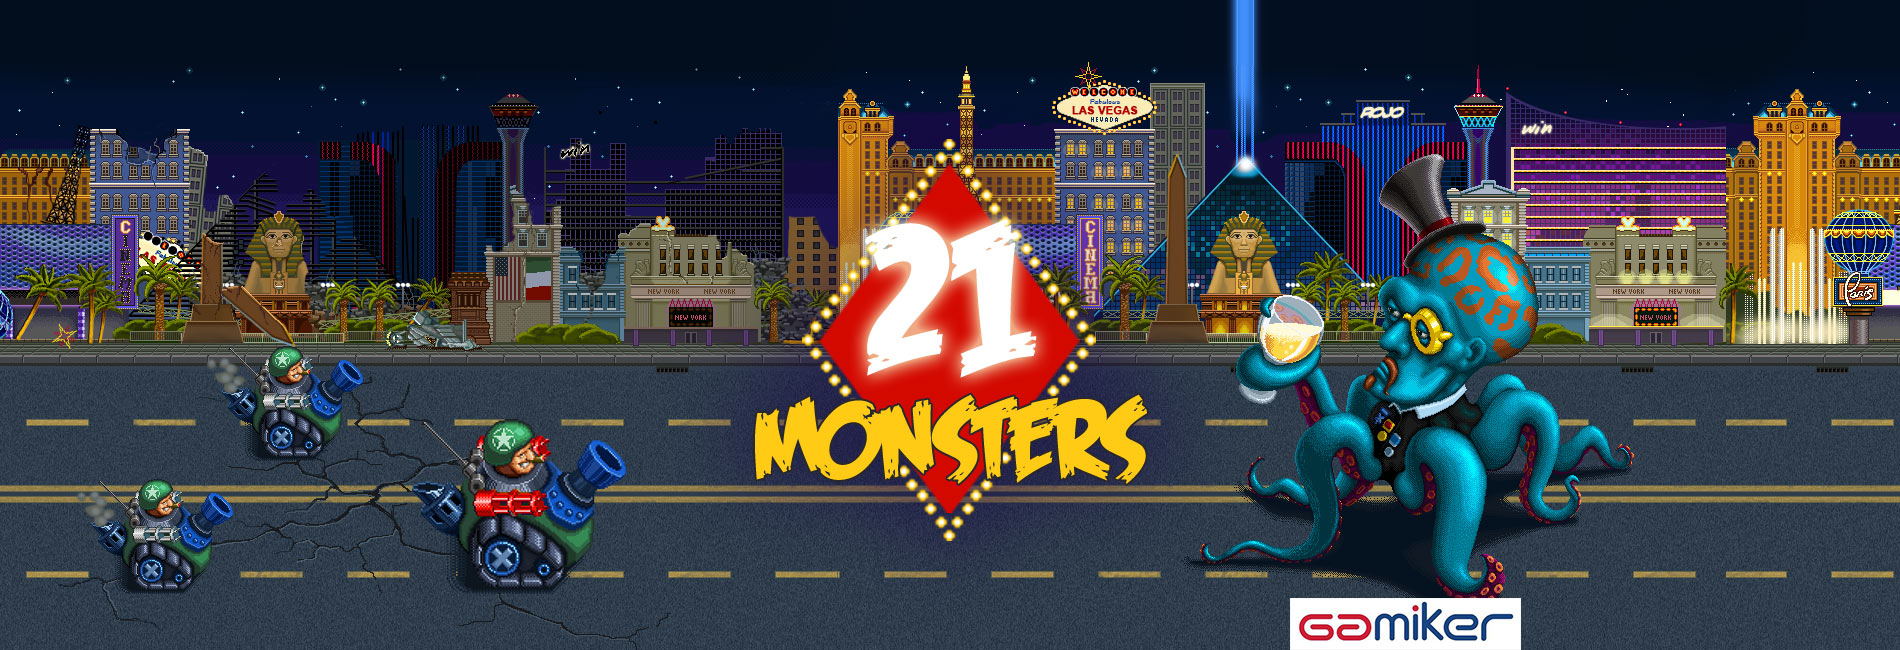 21 Monsters